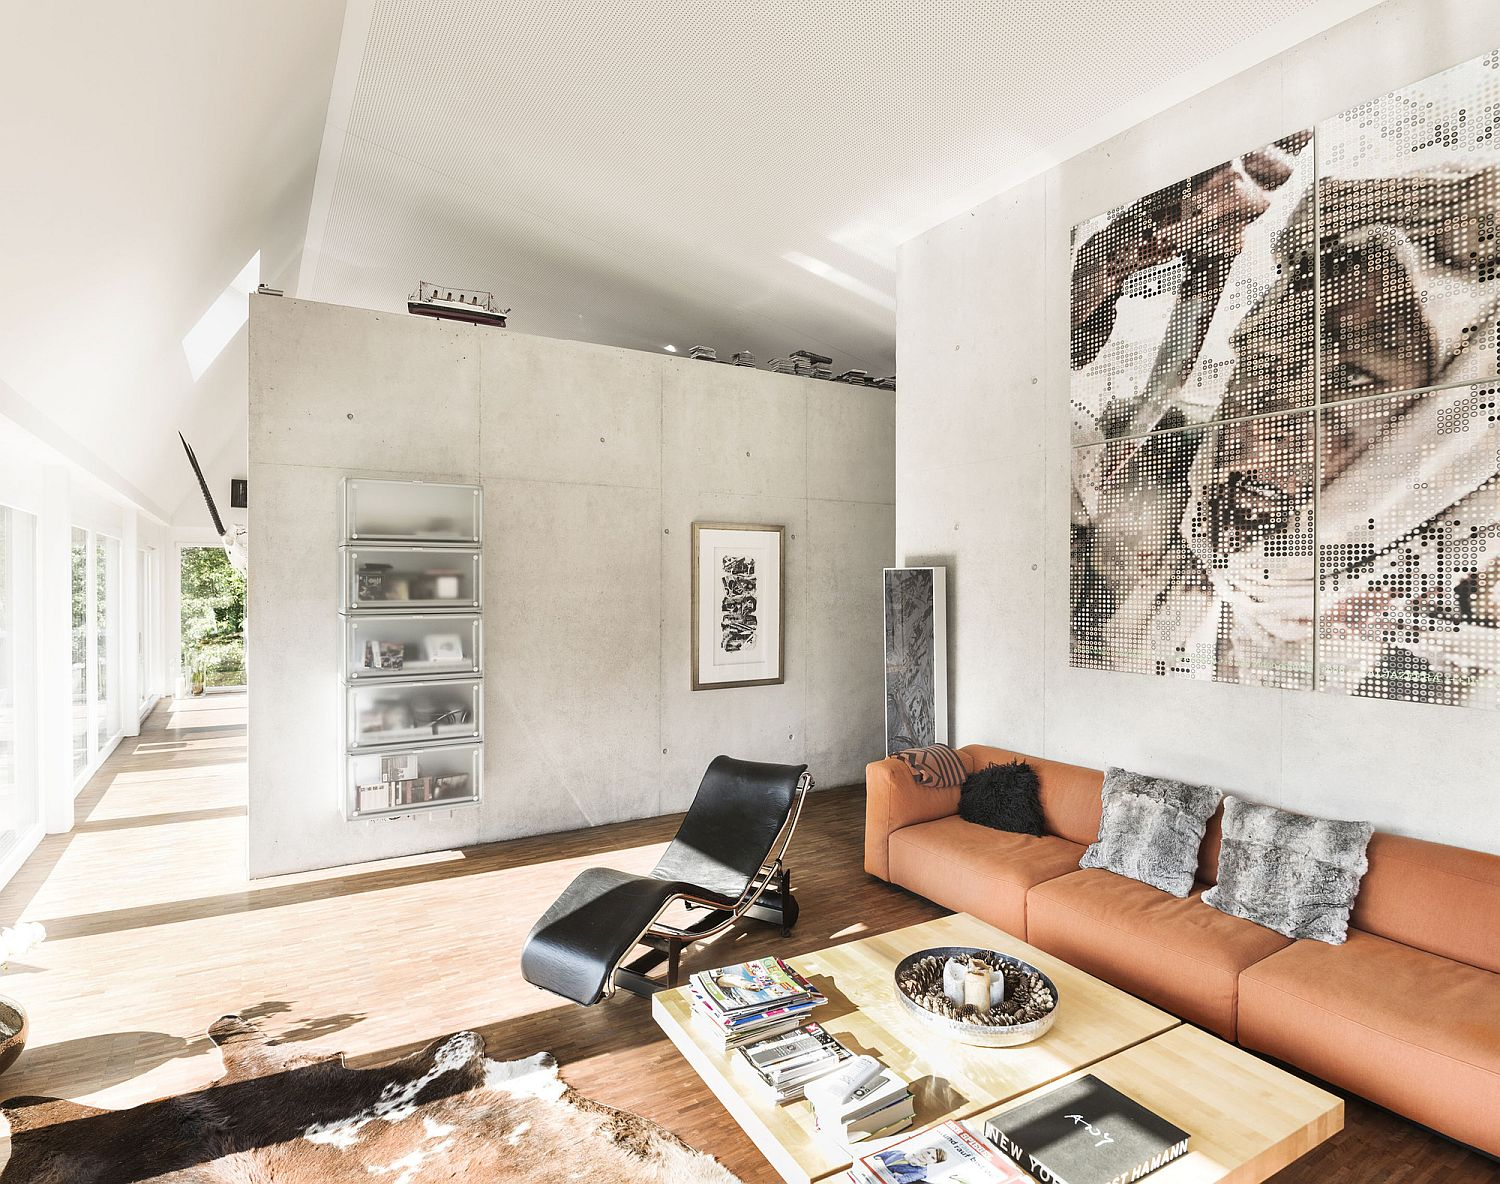 Central living area with curated decor and interesting wall art